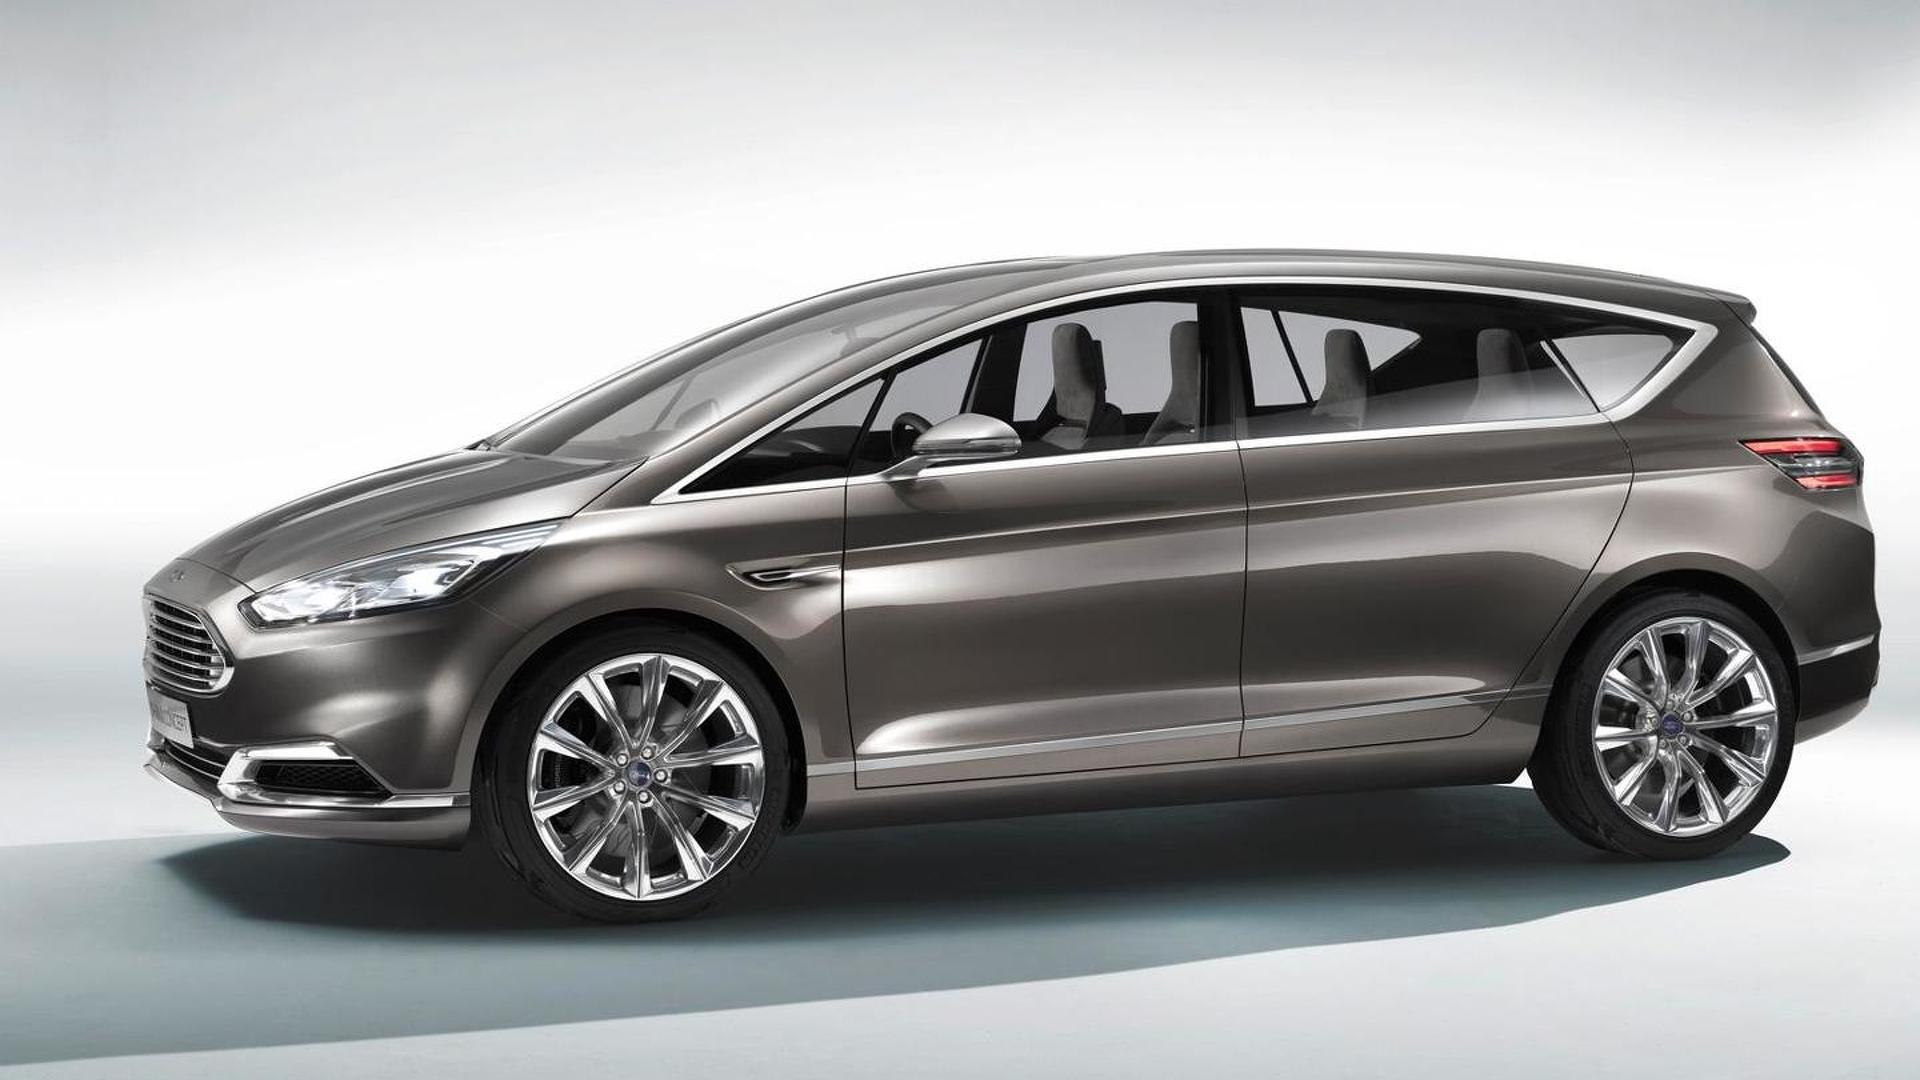 Ford S Max News And Reviews Motor1 Com Uk